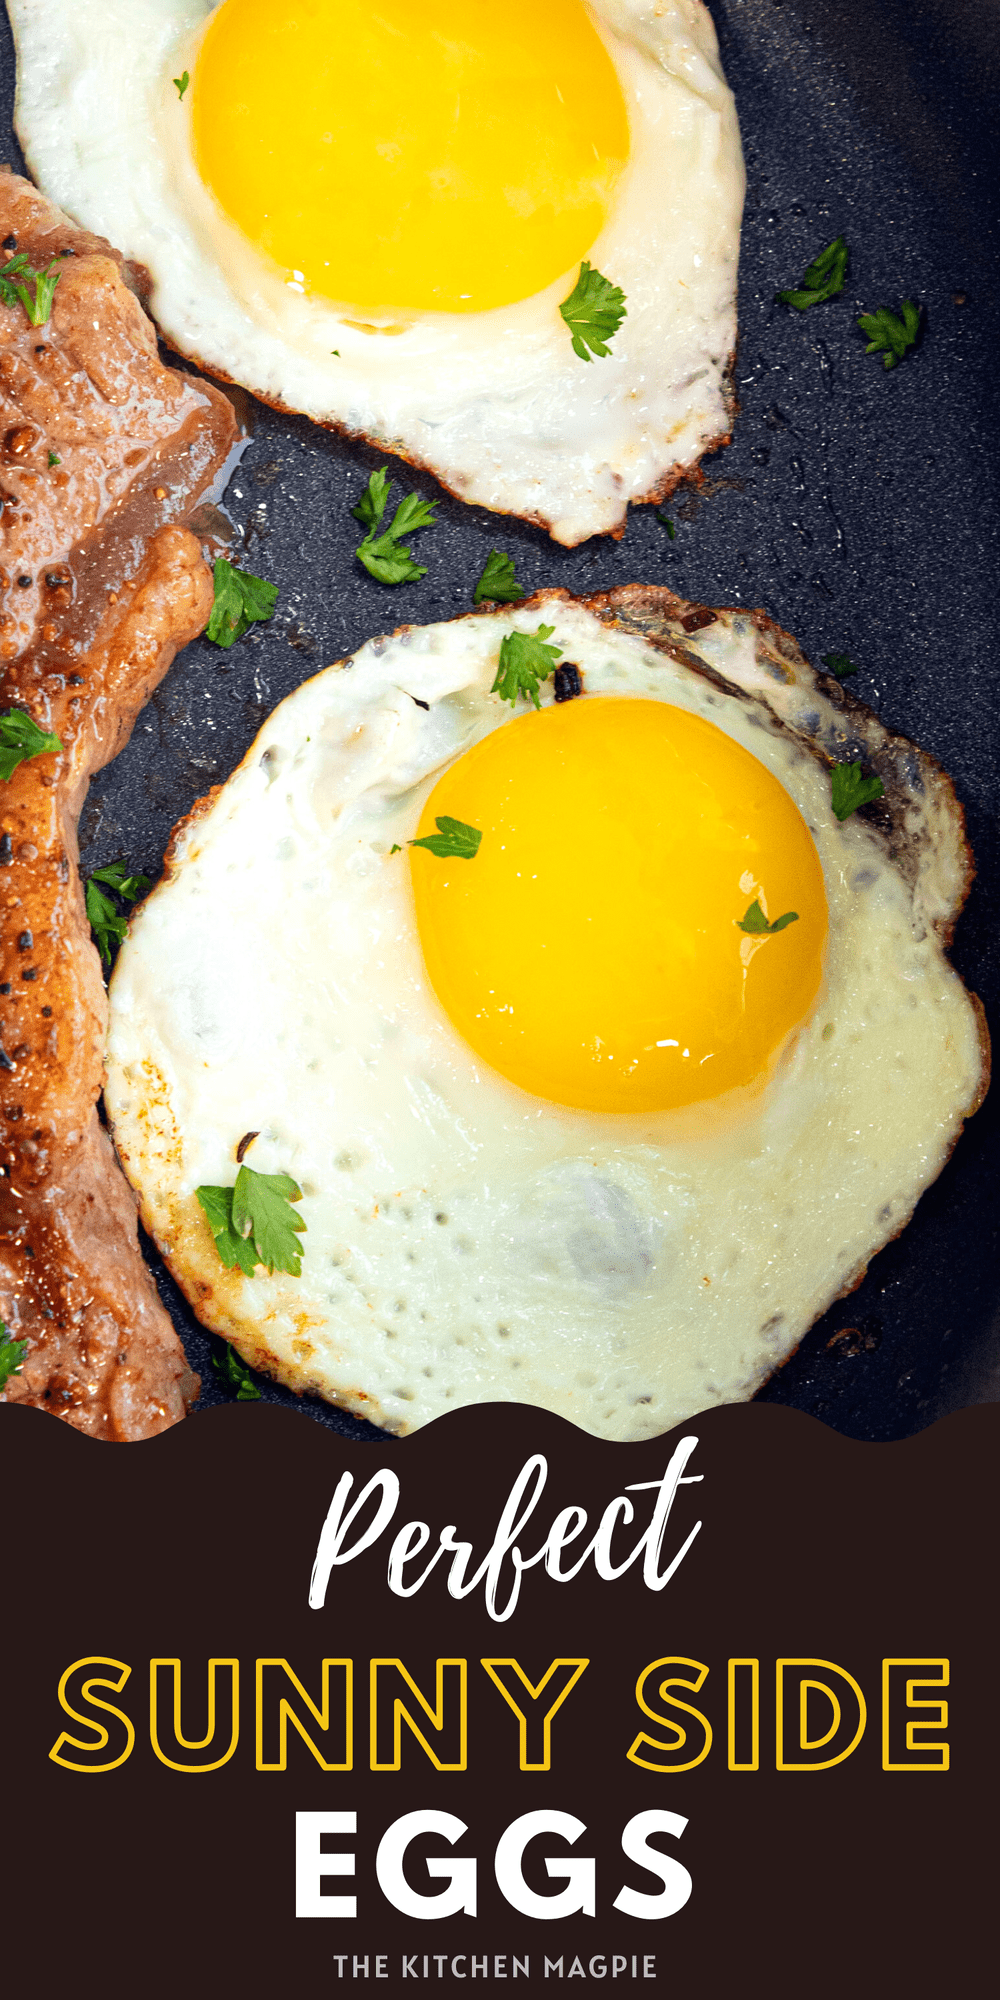 Sunny side up eggs with crispy browned bottoms are easy to make, if you know the right method! These are perfect for dipping toast into or topping your favorite dinner with!